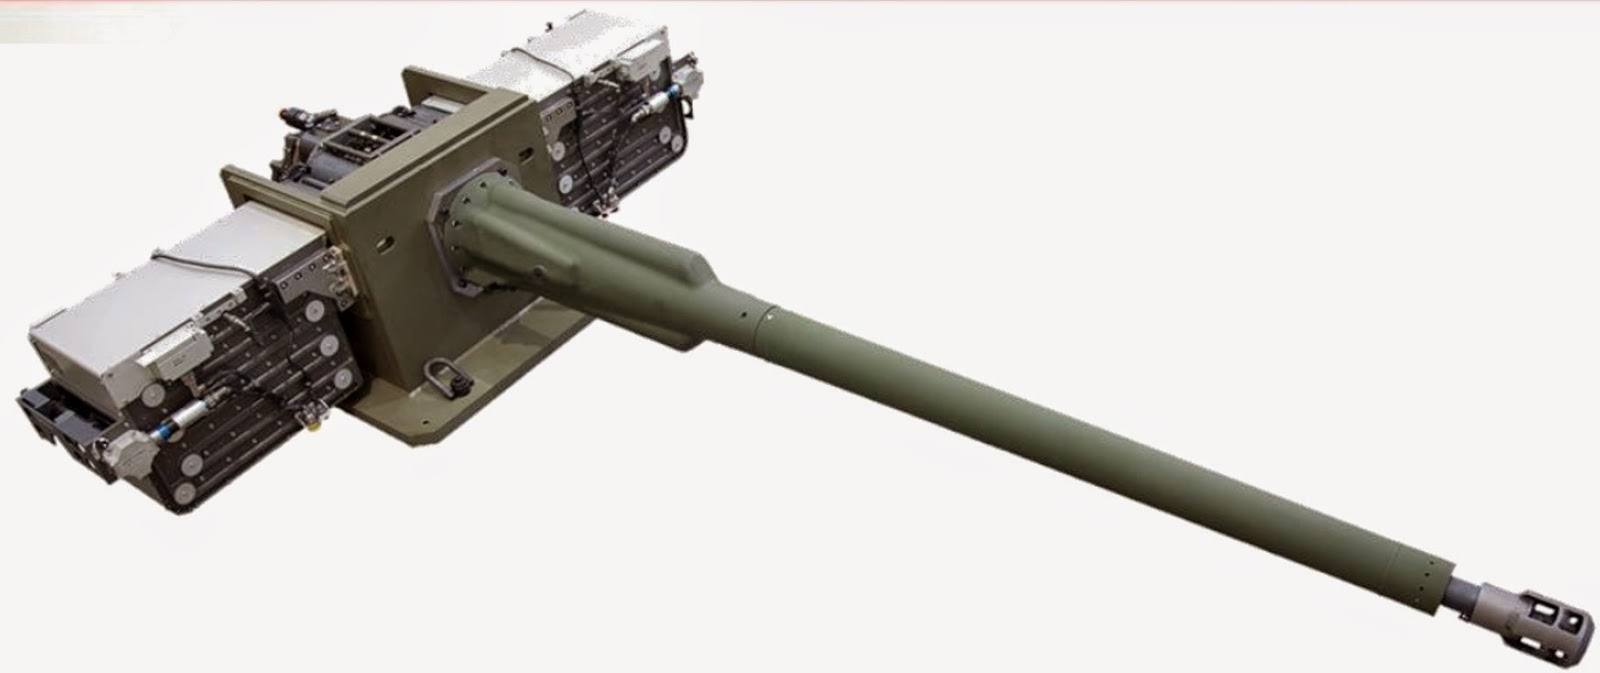 XM813 30mm Cannon